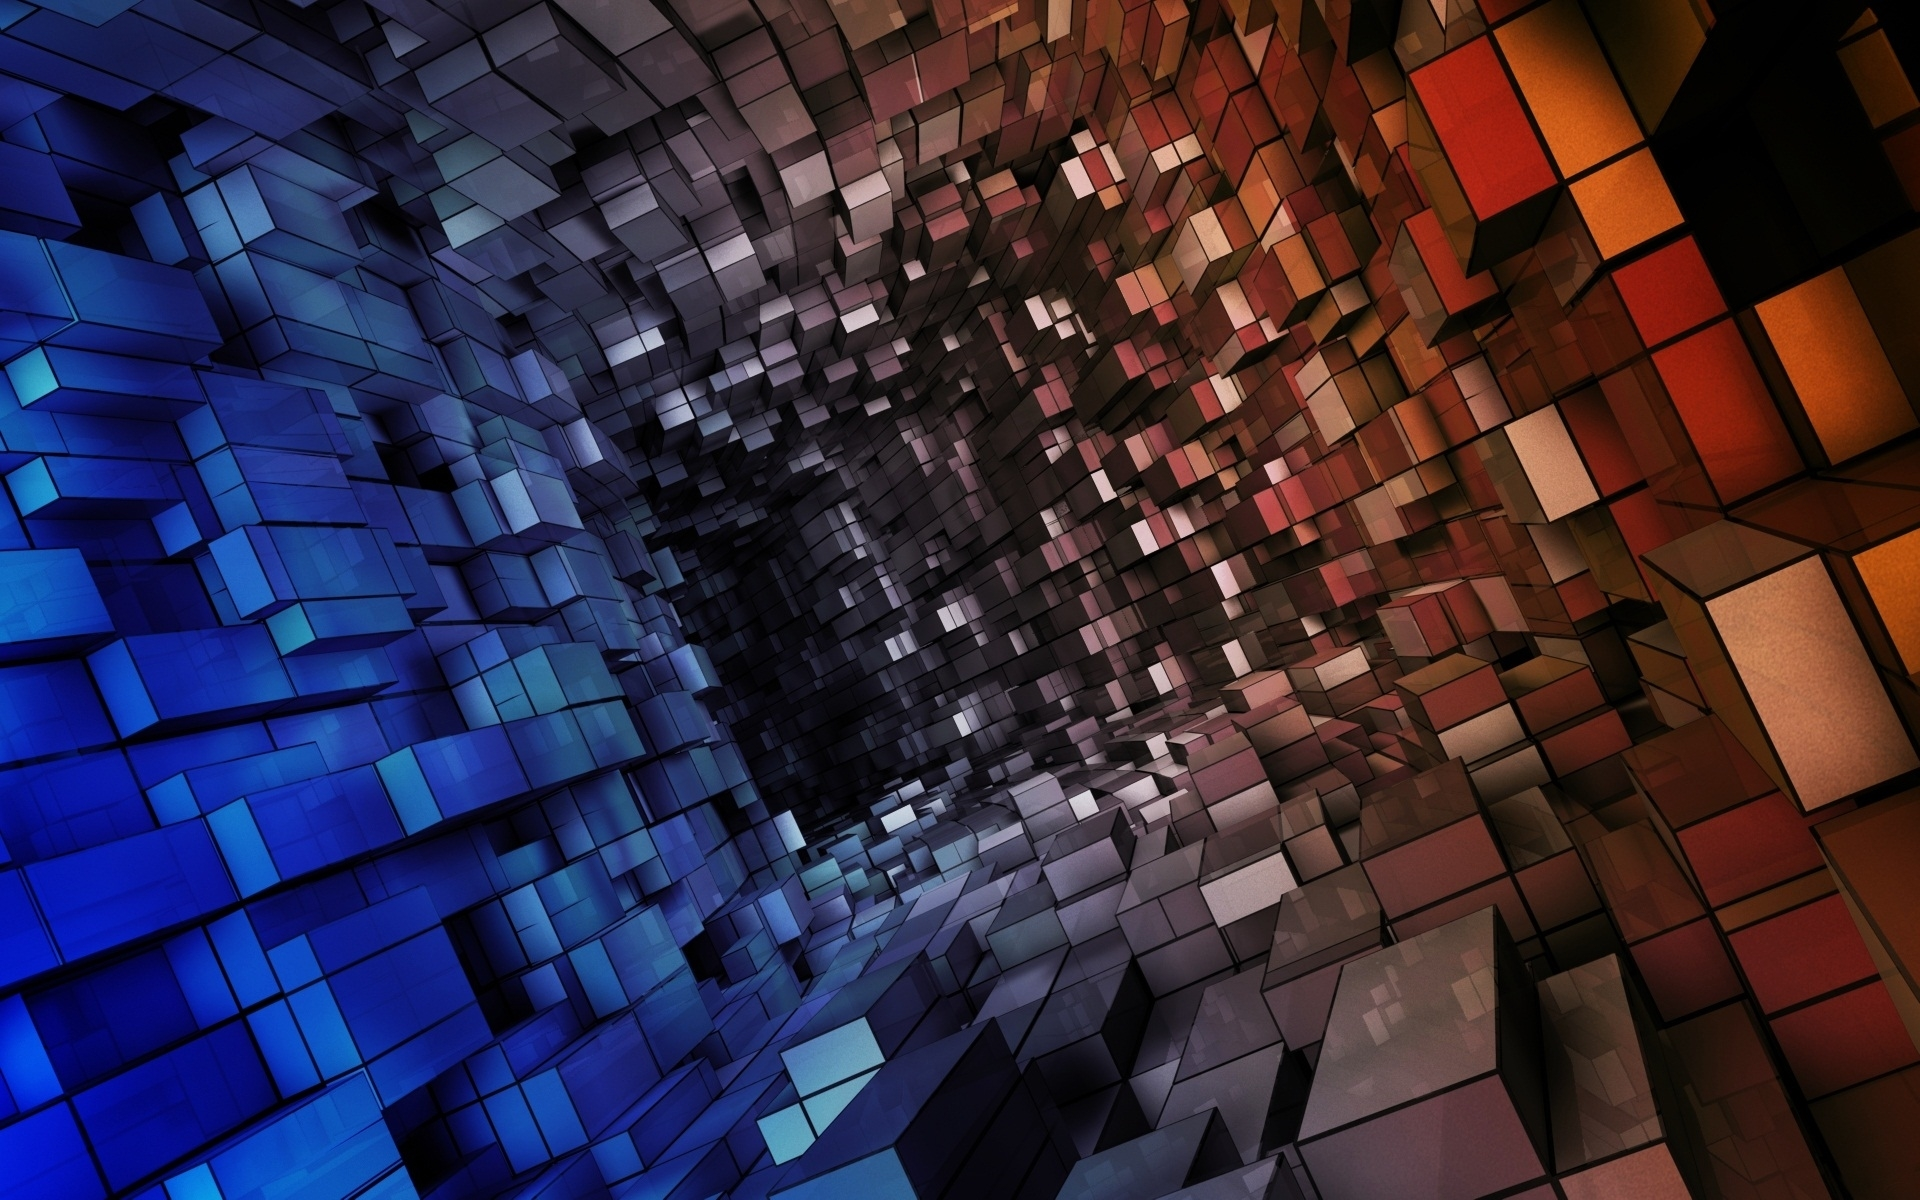 3d abstract wallpapers for deskto